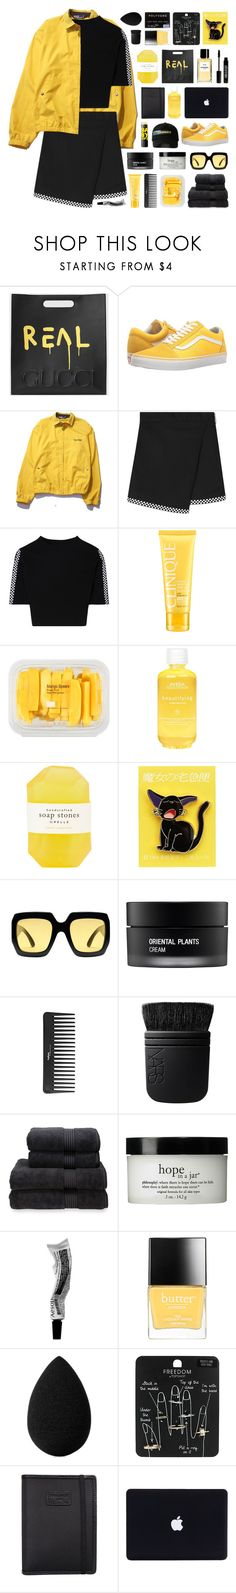 """""""17:28"""" by svga-kookie ❤ liked on Polyvore featuring Gucci, Vans, Polo Ralph Lauren, Clinique, MANGO, Maybelline, Aveda, Pelle, Ghibli and Koh Gen Do"""